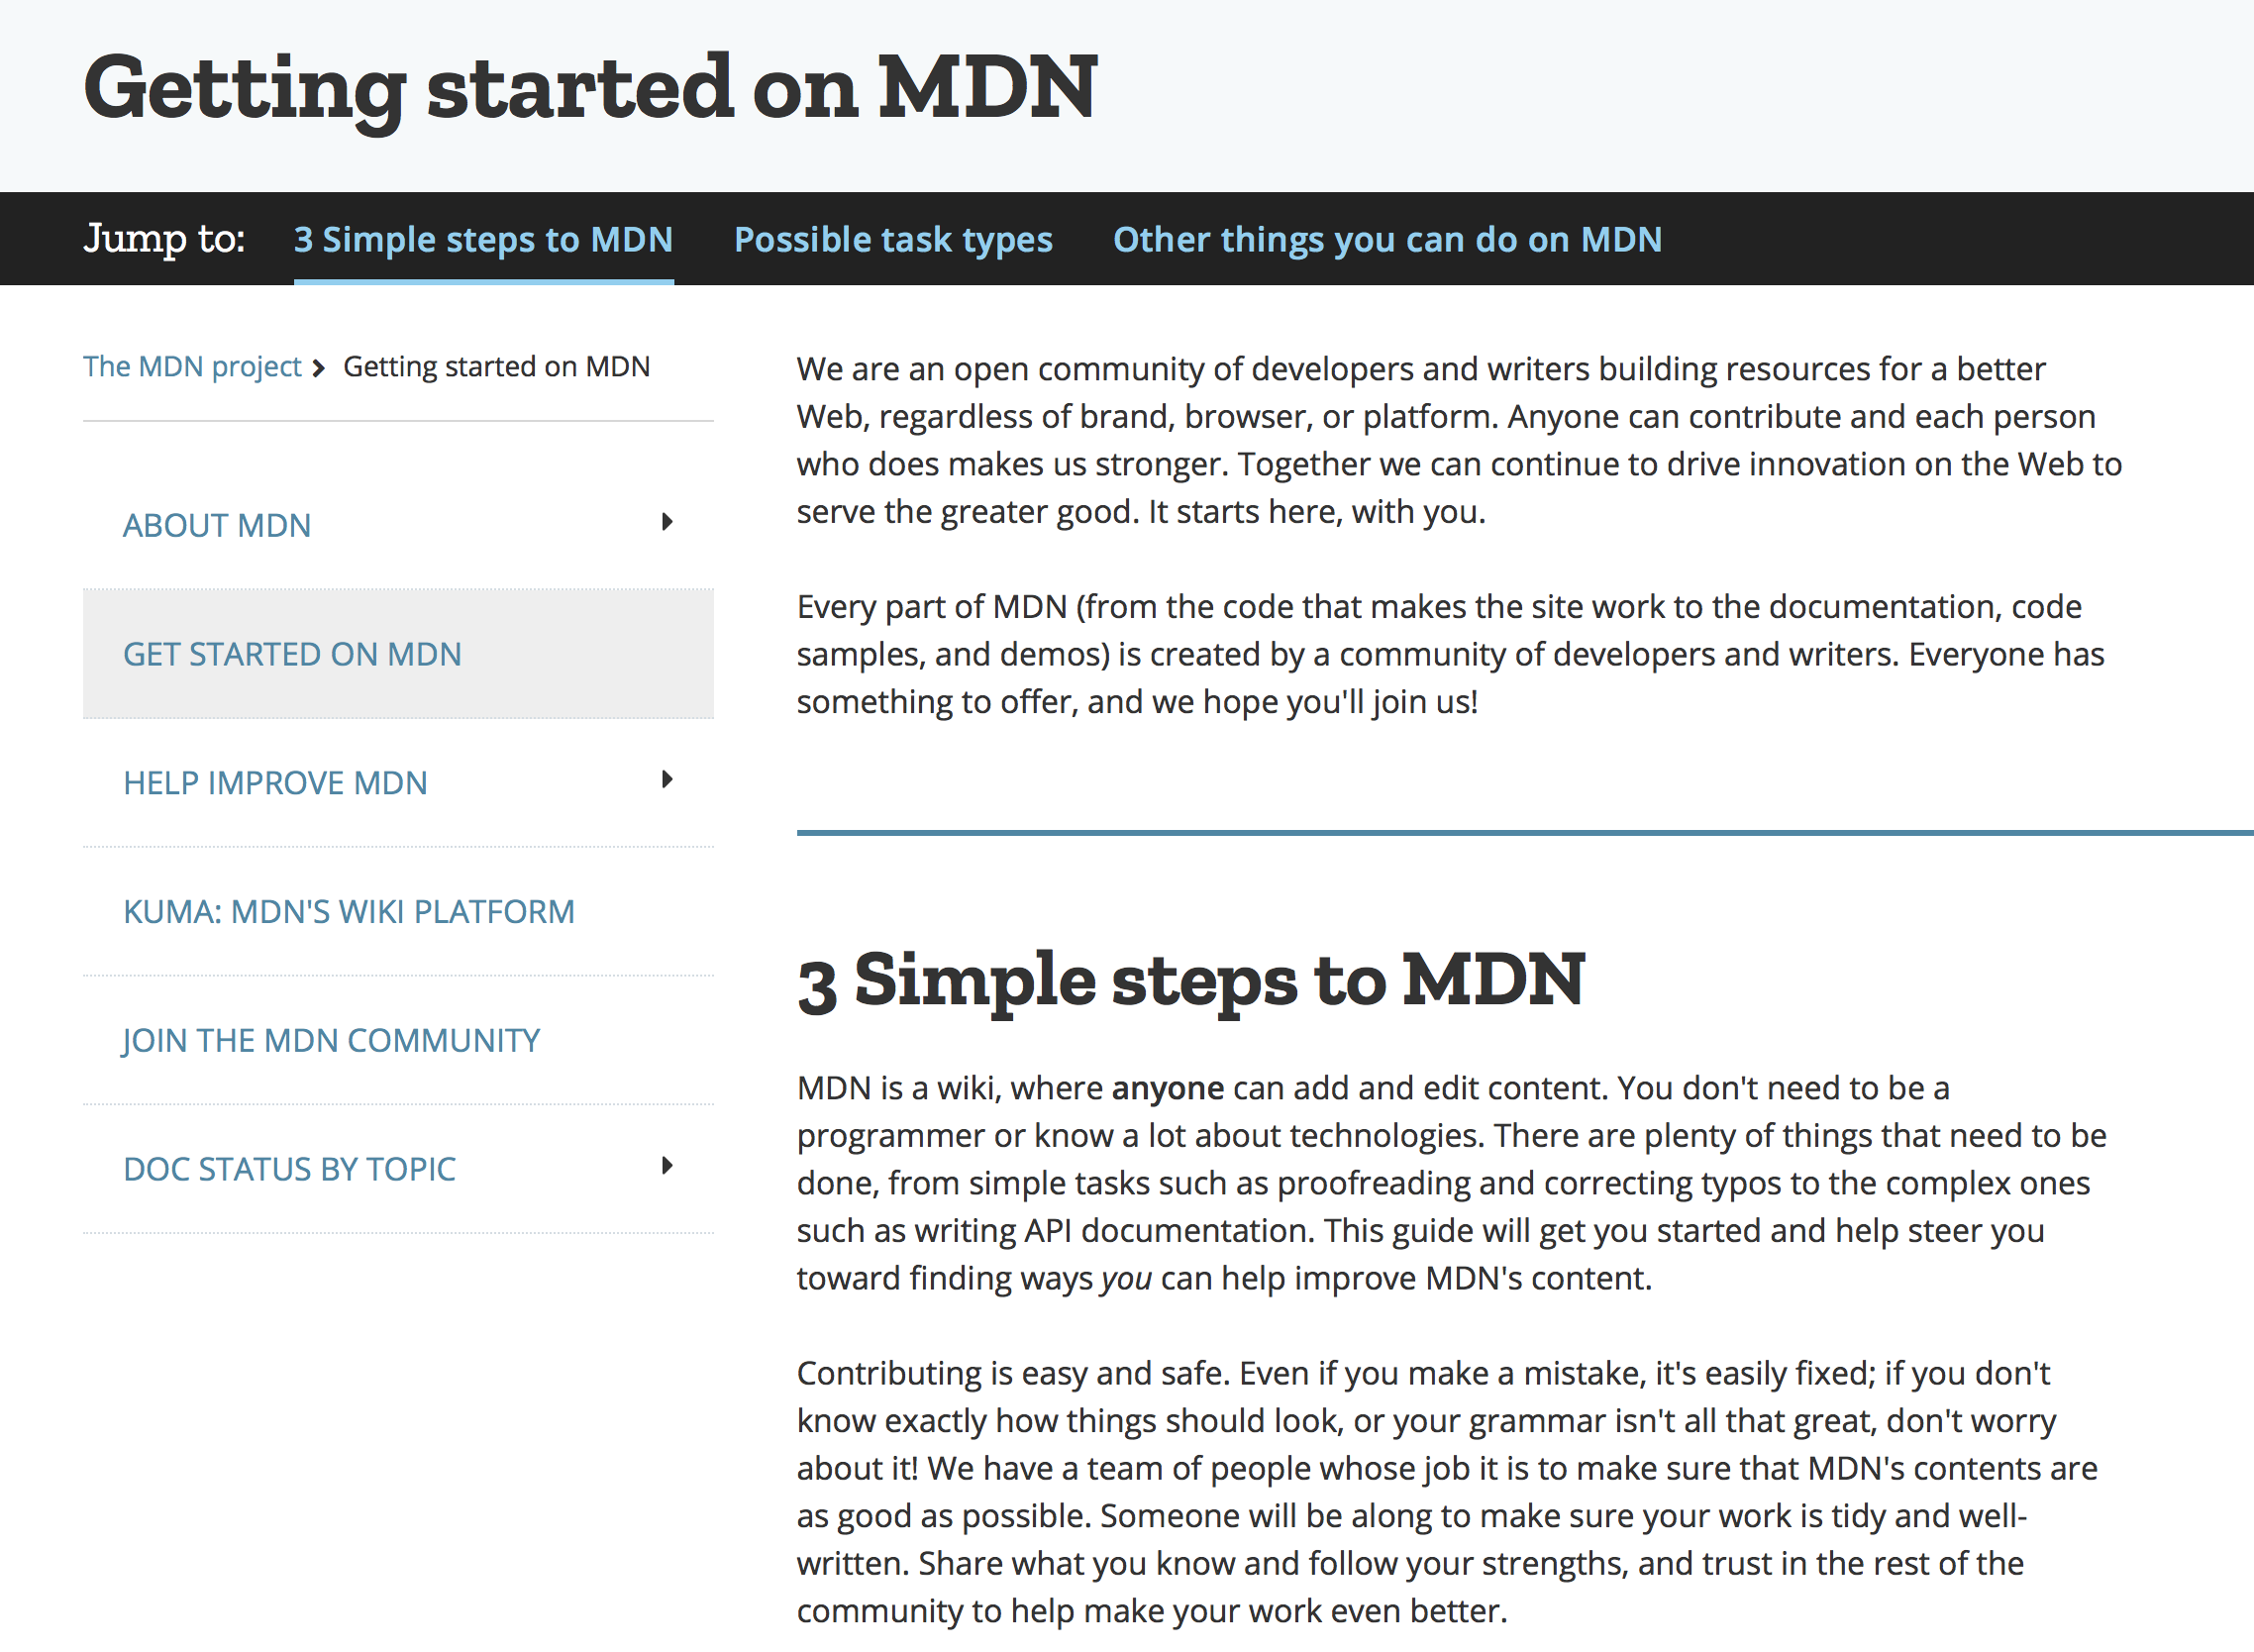 getting started on MDN